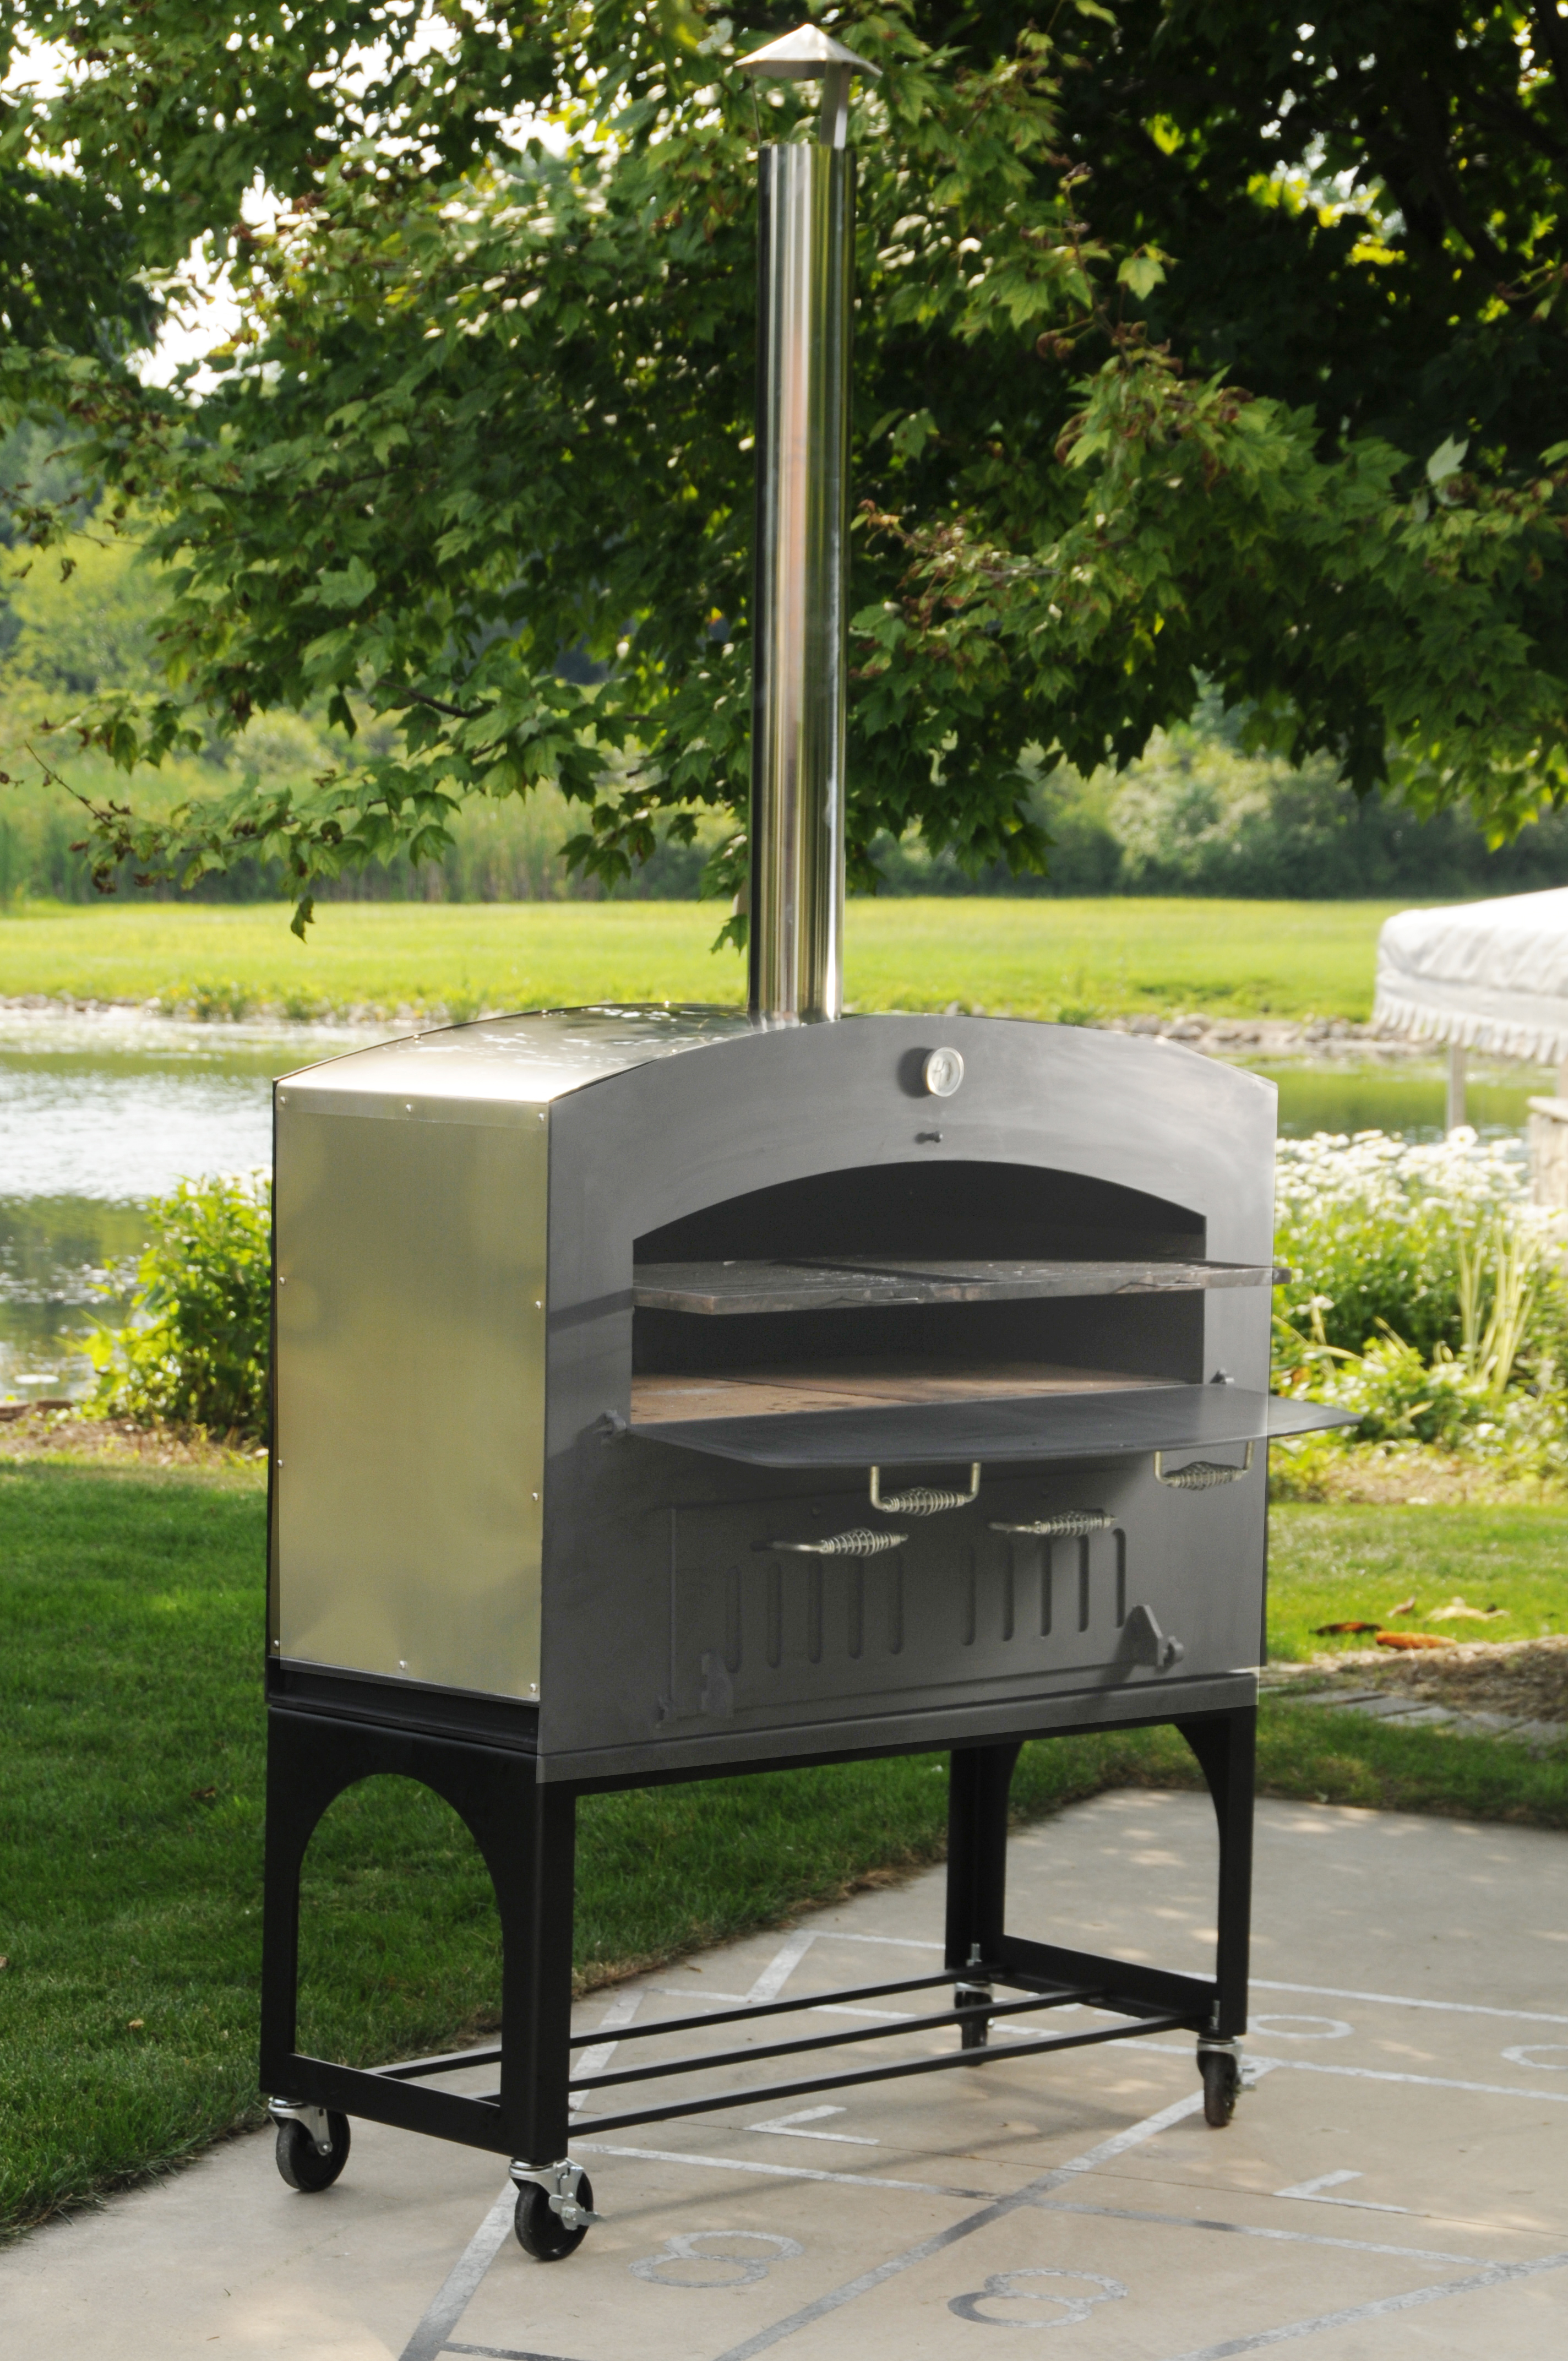 46 Inch Outdoor Wood Burning Oven With Stainless Steel